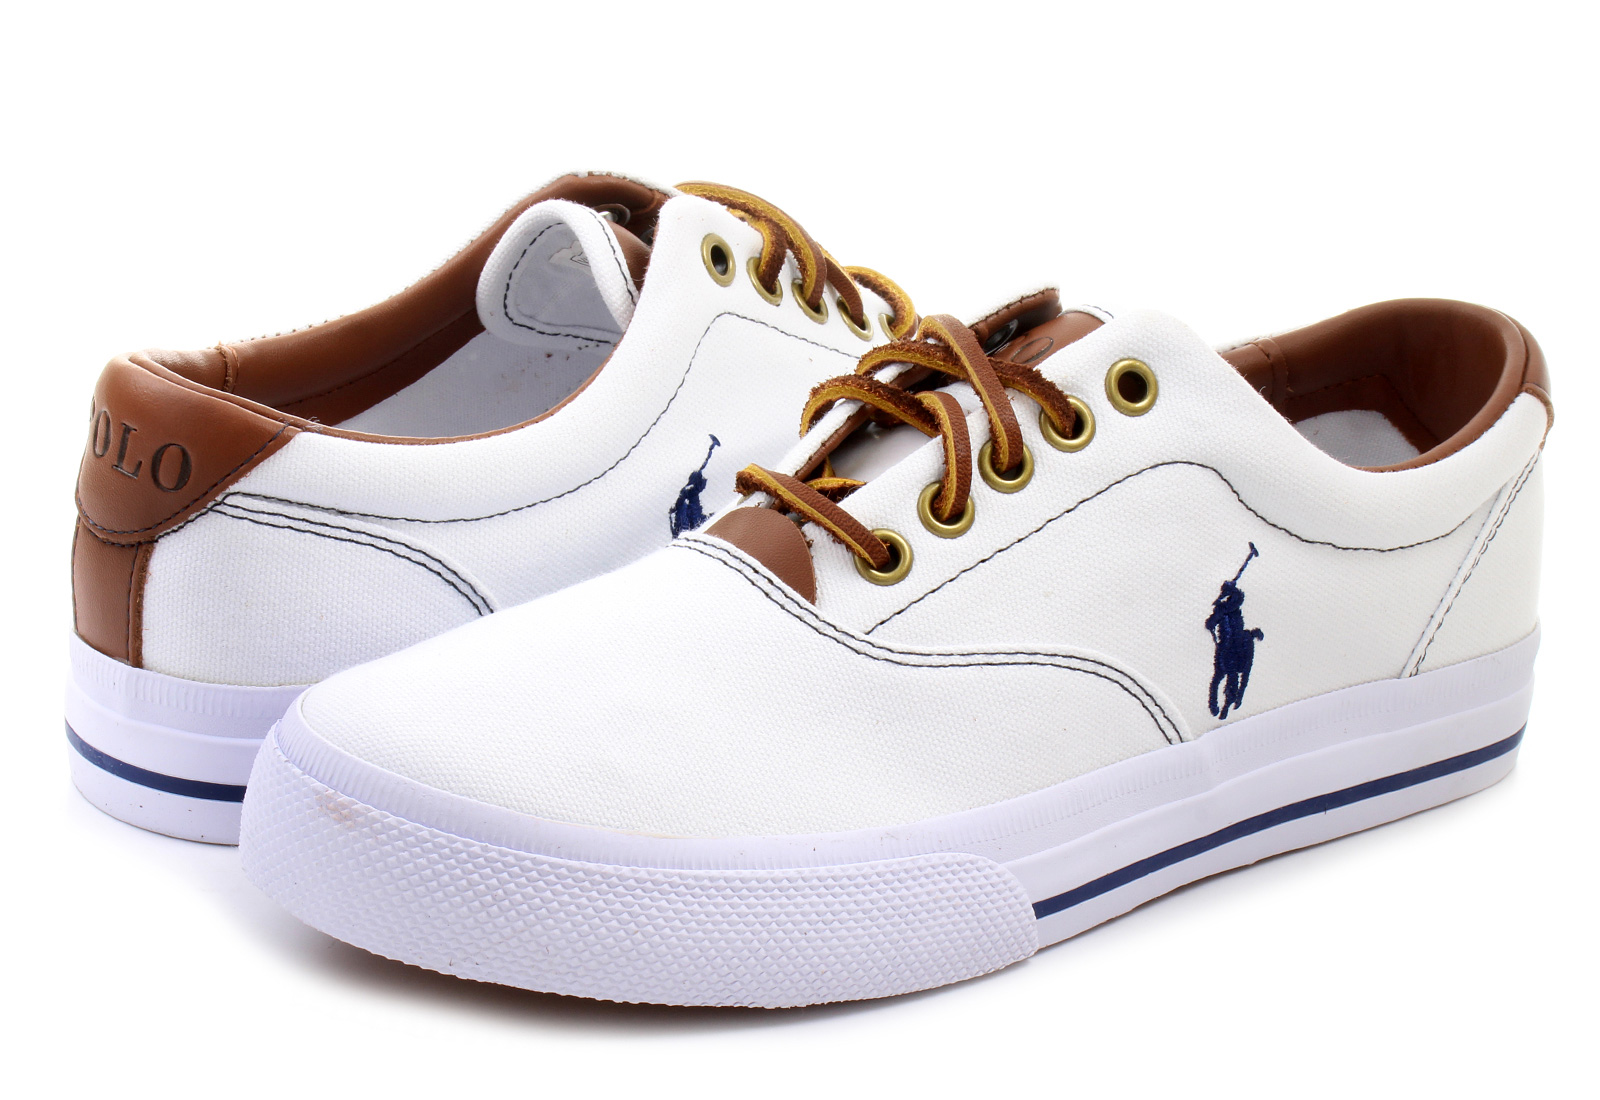 Polo Ralph Lauren Cipő - Vaughn - 0222-C-A1000 - Office Shoes ... 3b8014242a